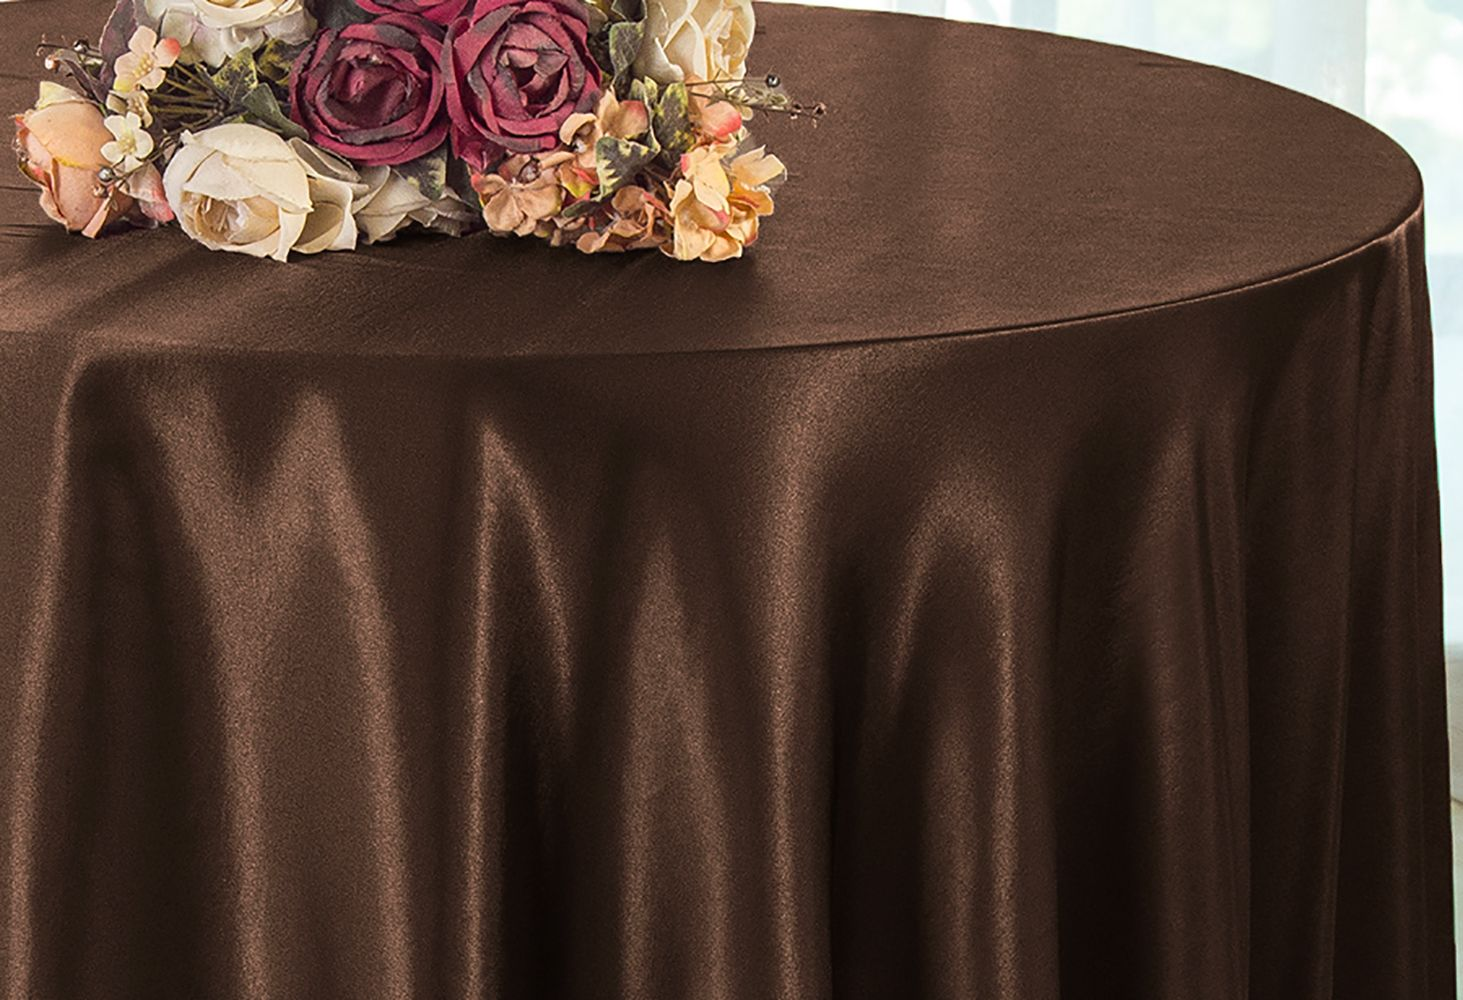 Round Table Overlays.Satin Round Table Overlays Toppers Chocolate